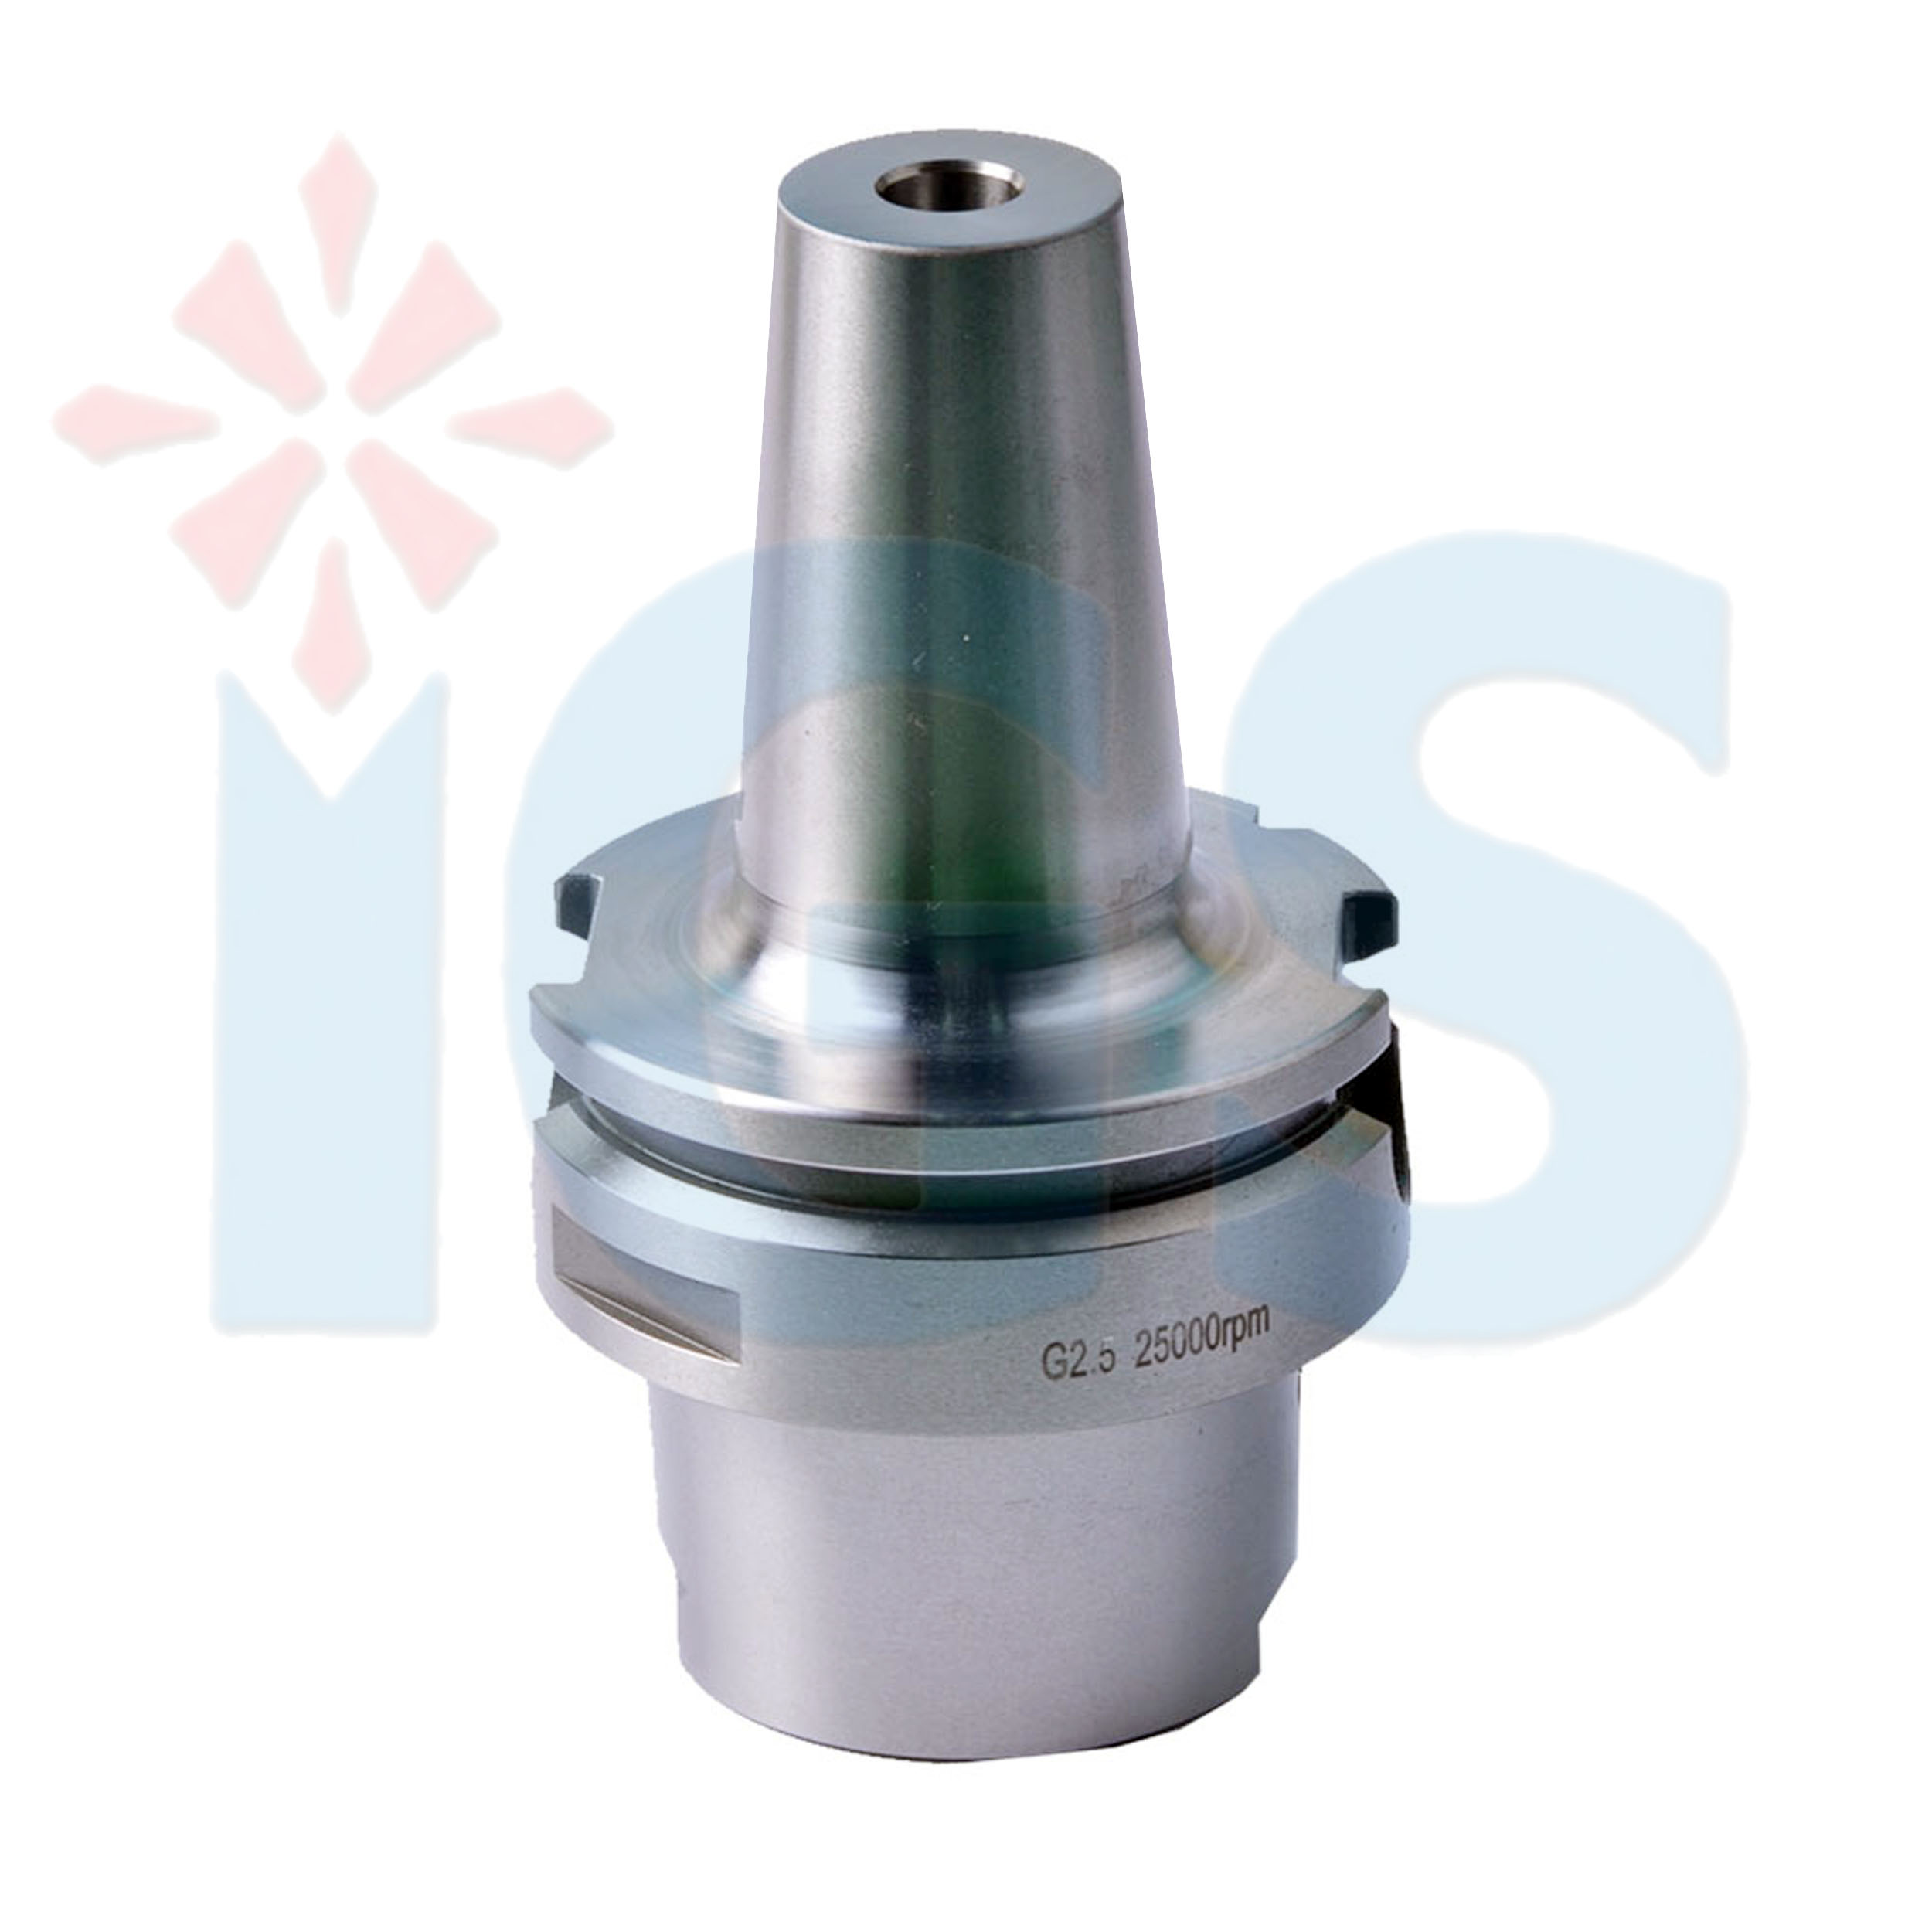 High Precision <font><b>HSK63A</b></font> SF06 8 10 12 70MM Shrink Fit Tool Holder New image